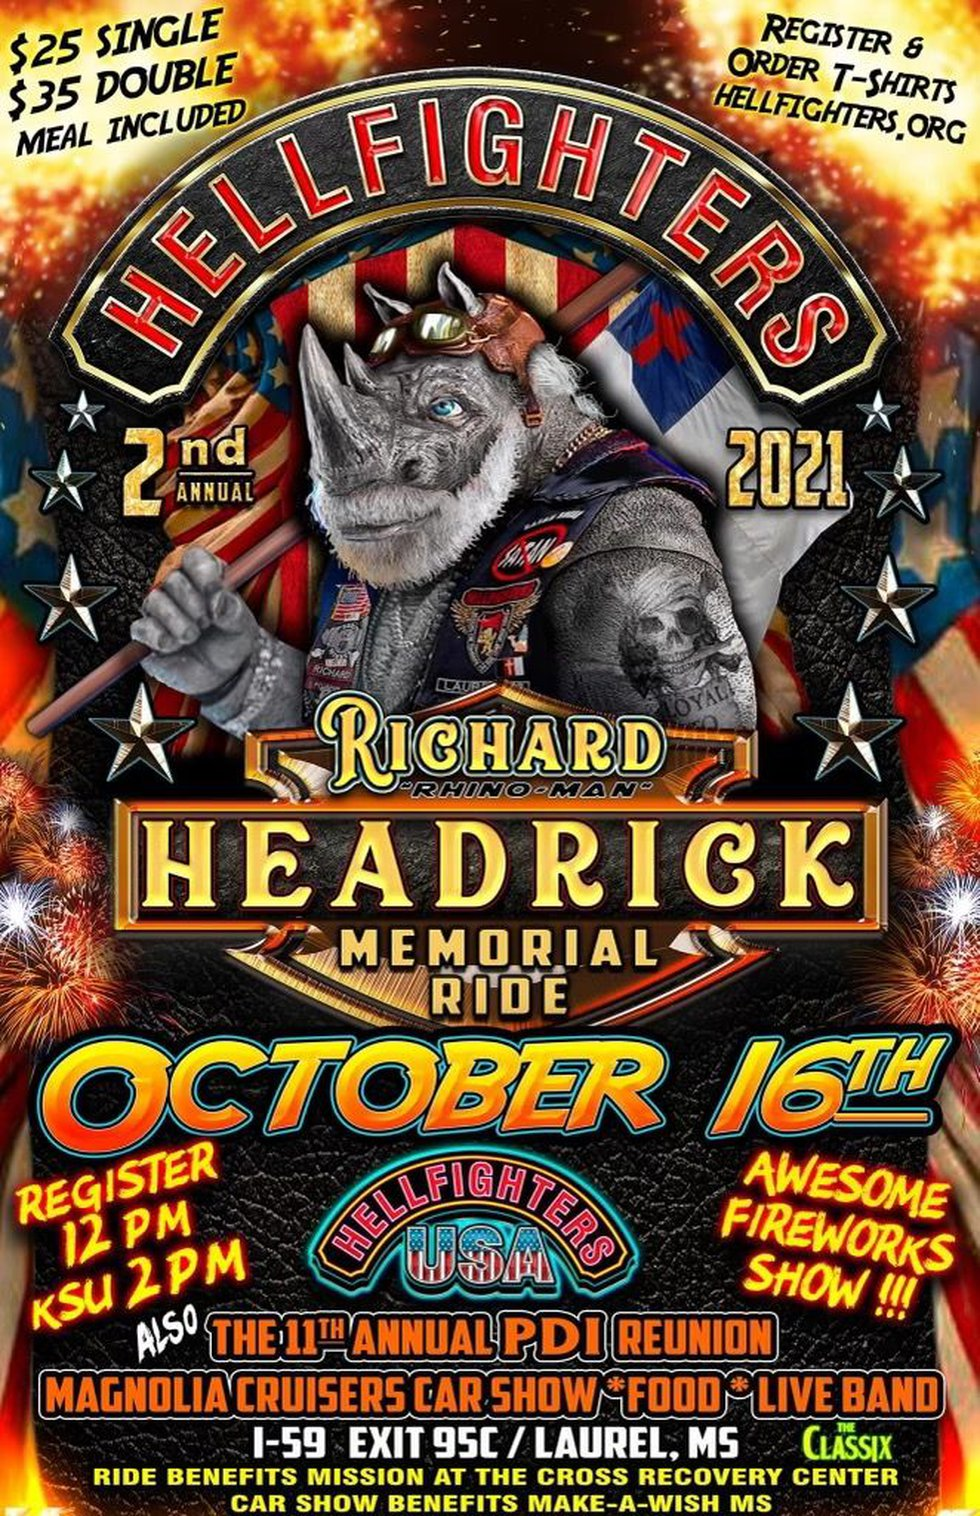 The Hellfighters Richard Headrick Memorial Ride is a benefit ride hosted by Hellfighters...